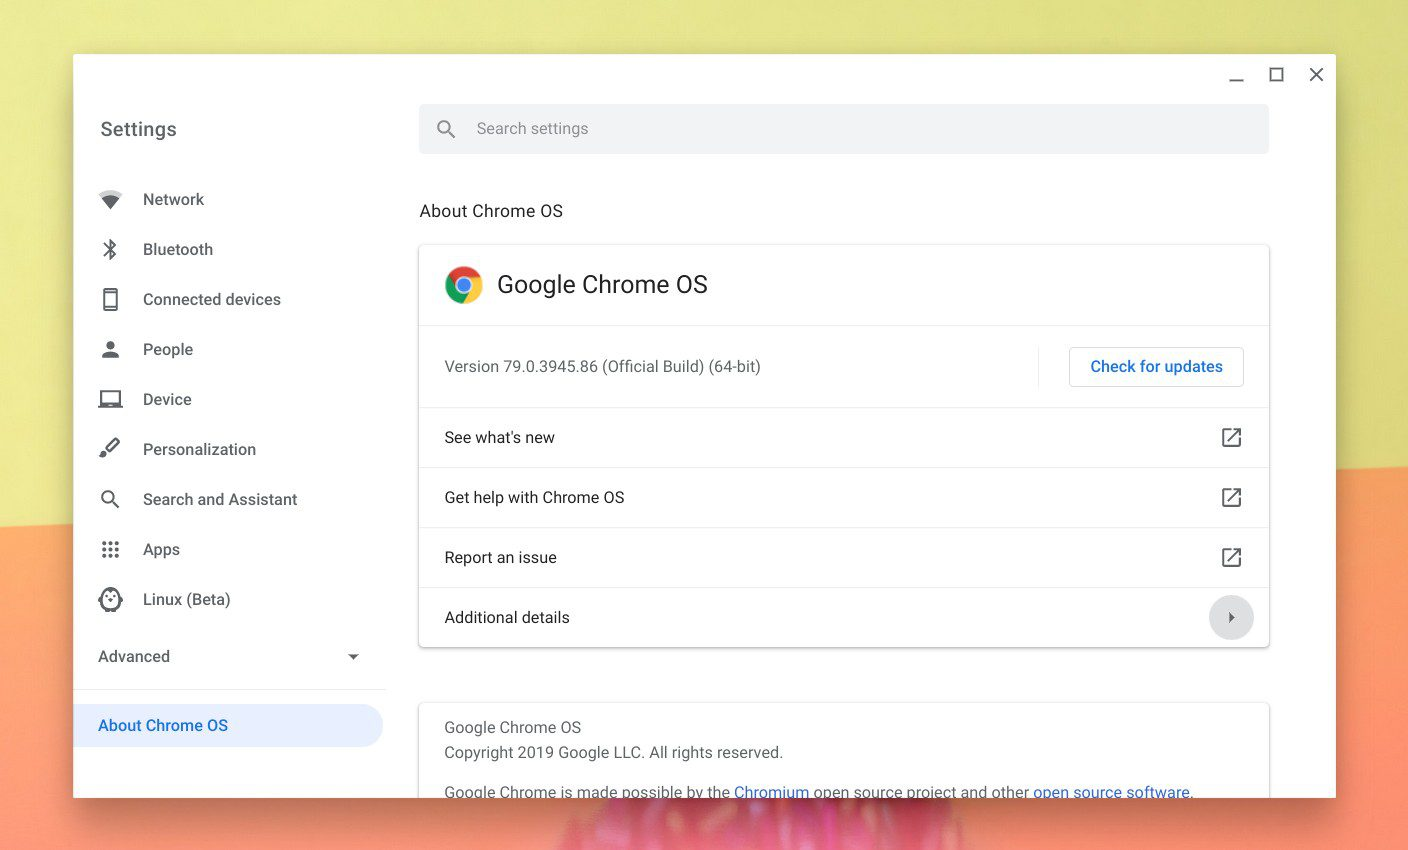 Settings - About Chrome OS